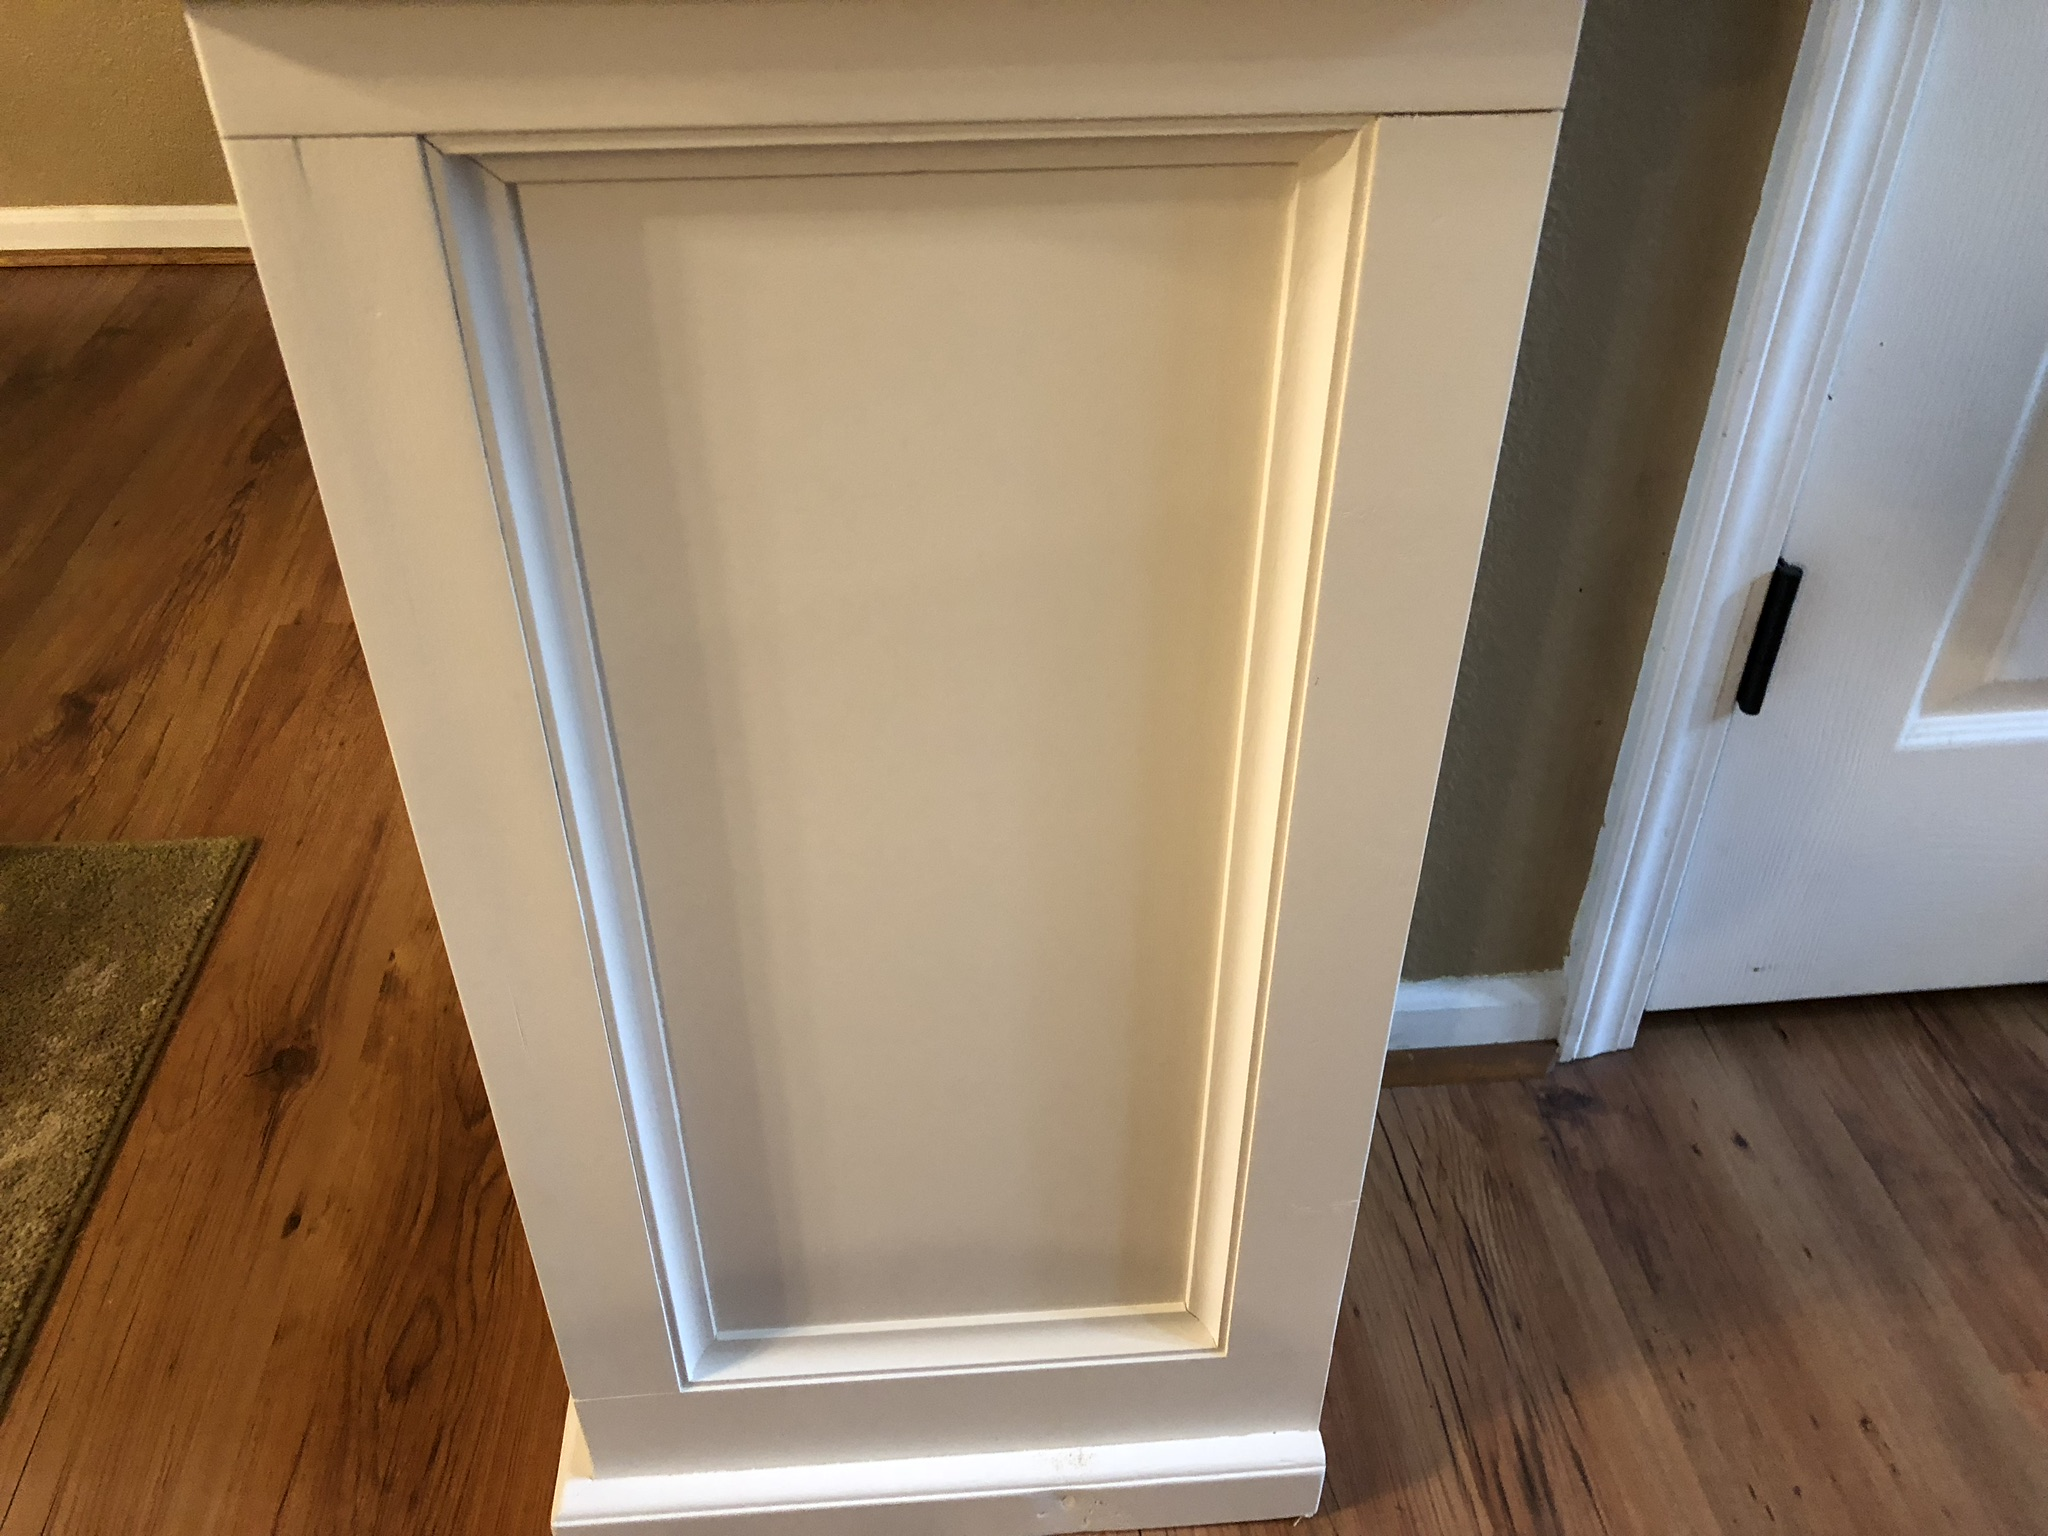 console table side.jpg